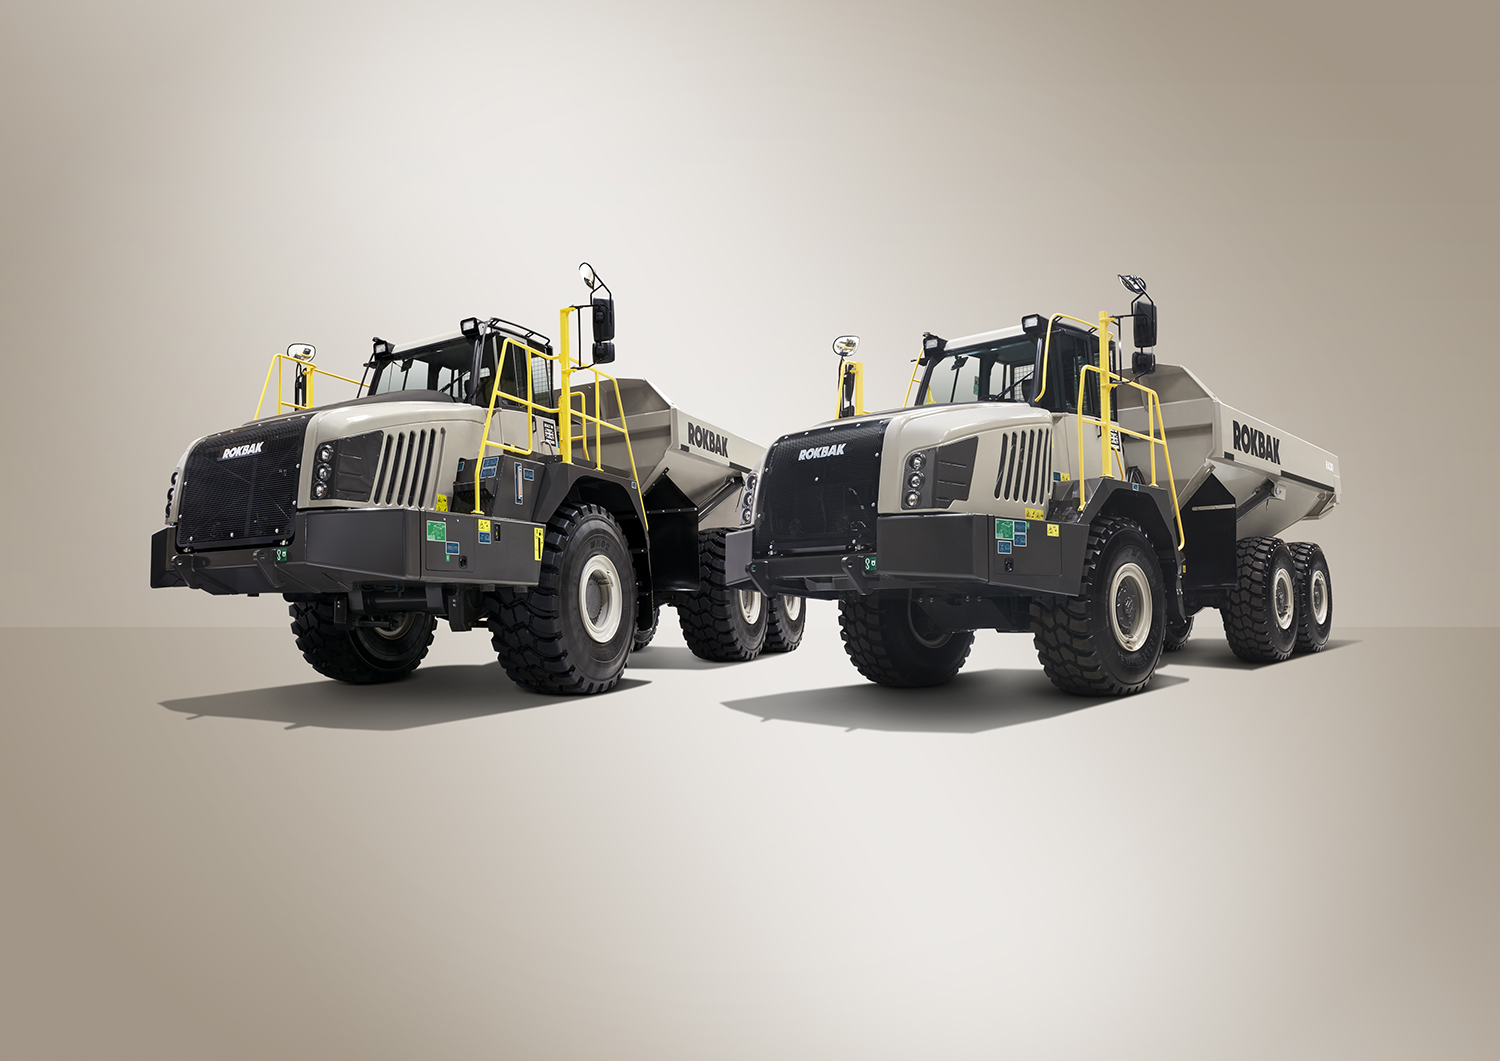 The 28-tonne payload RA30 and 38-tonne payload RA40 from Rokbak are the most productive and efficient articulated haulers the company has ever made.